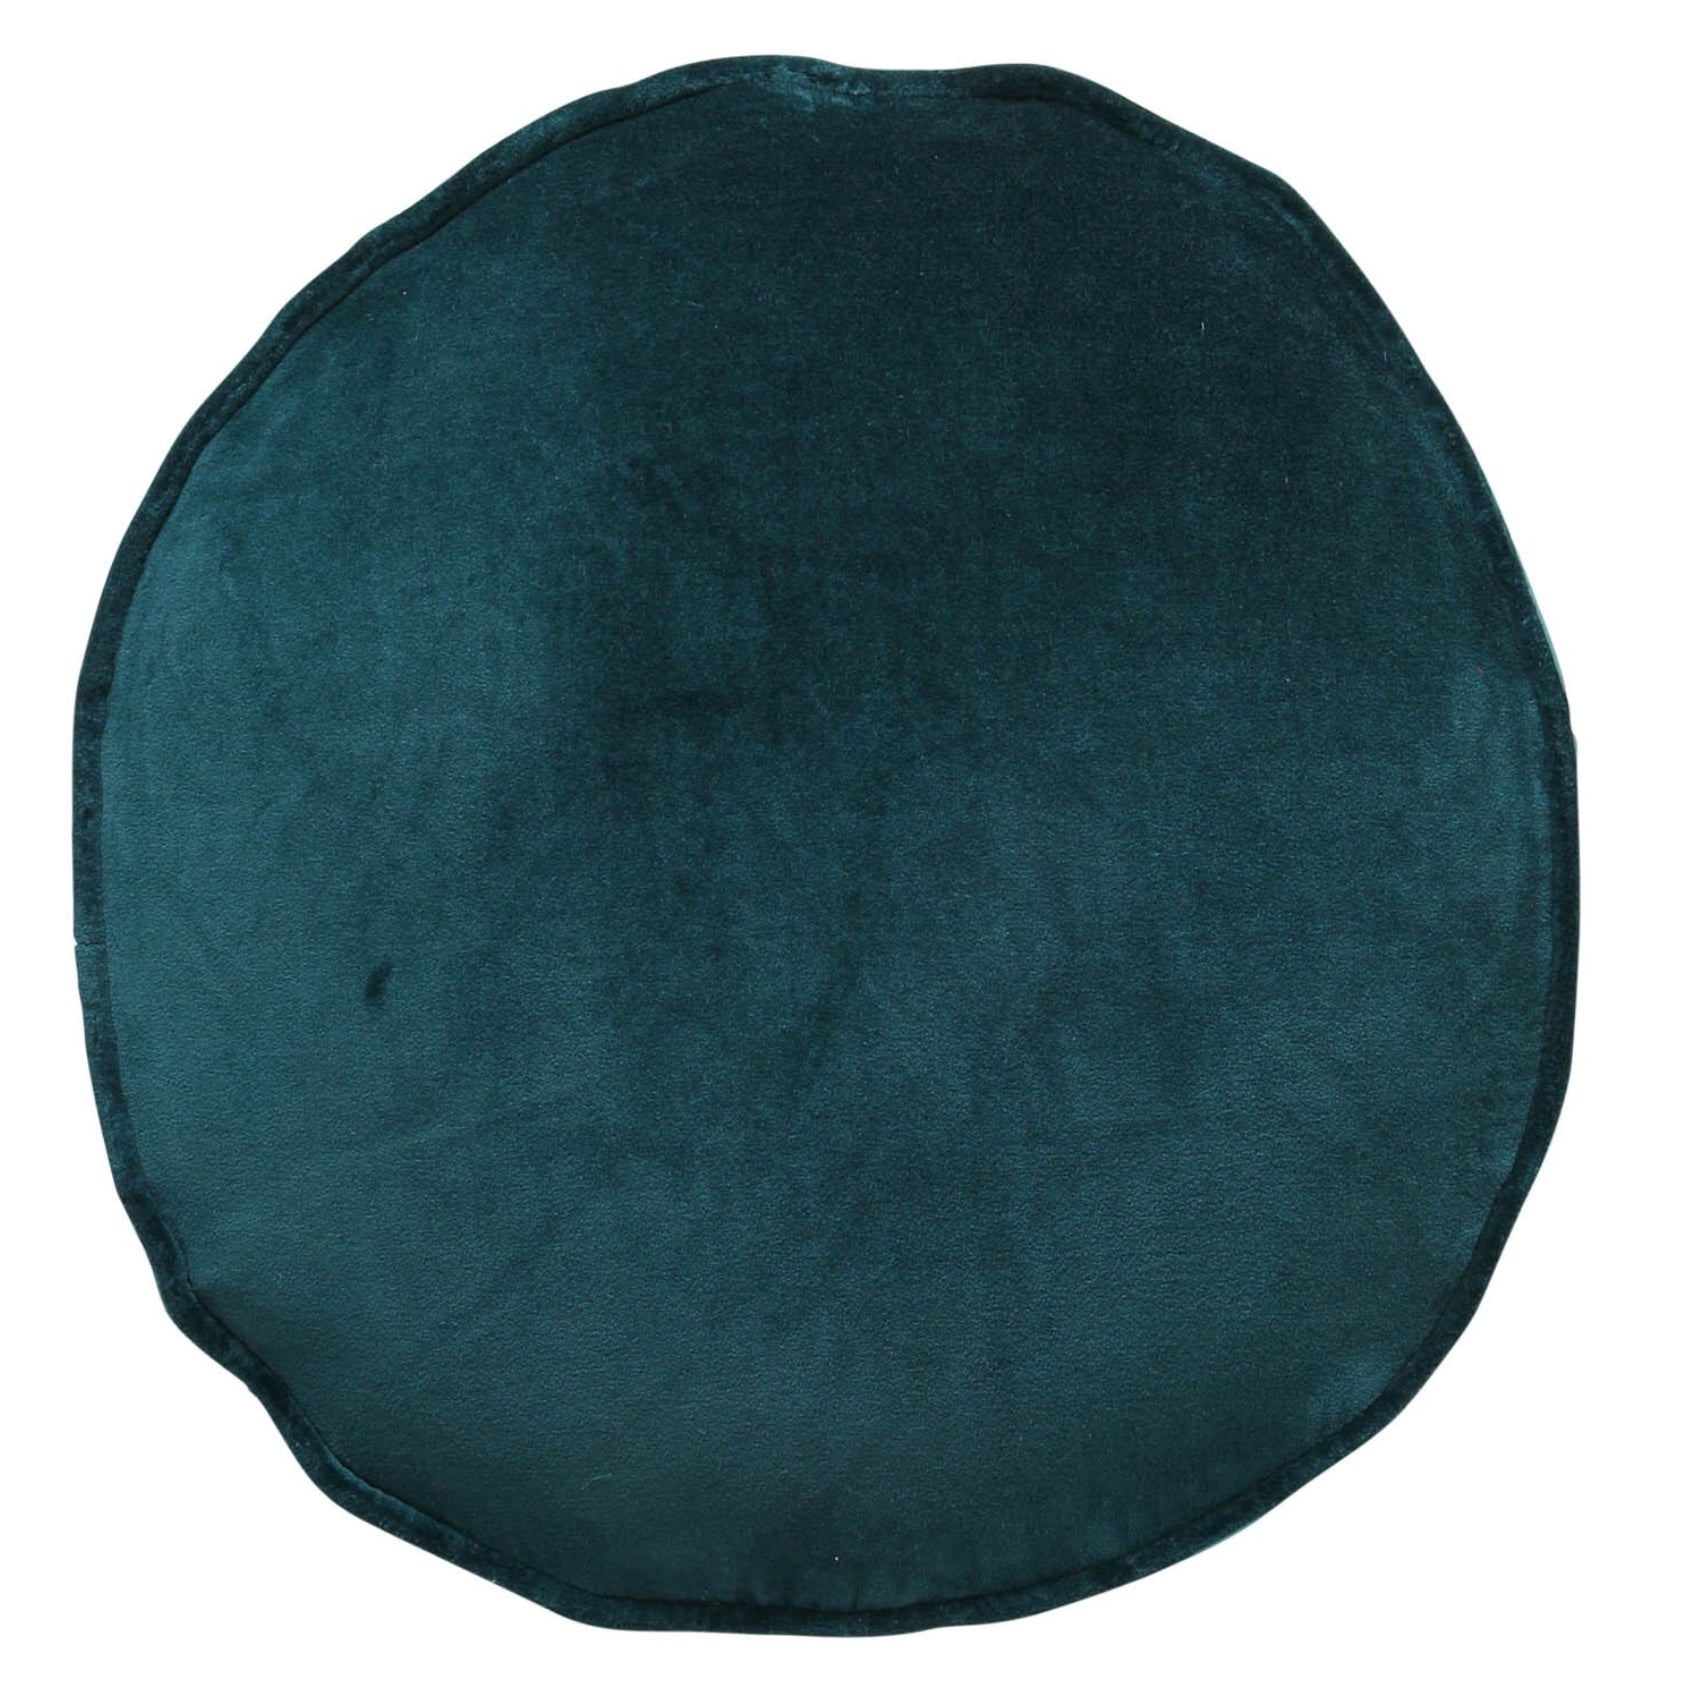 Alpine Green Velvet Pea Cushion - Folke & Freya